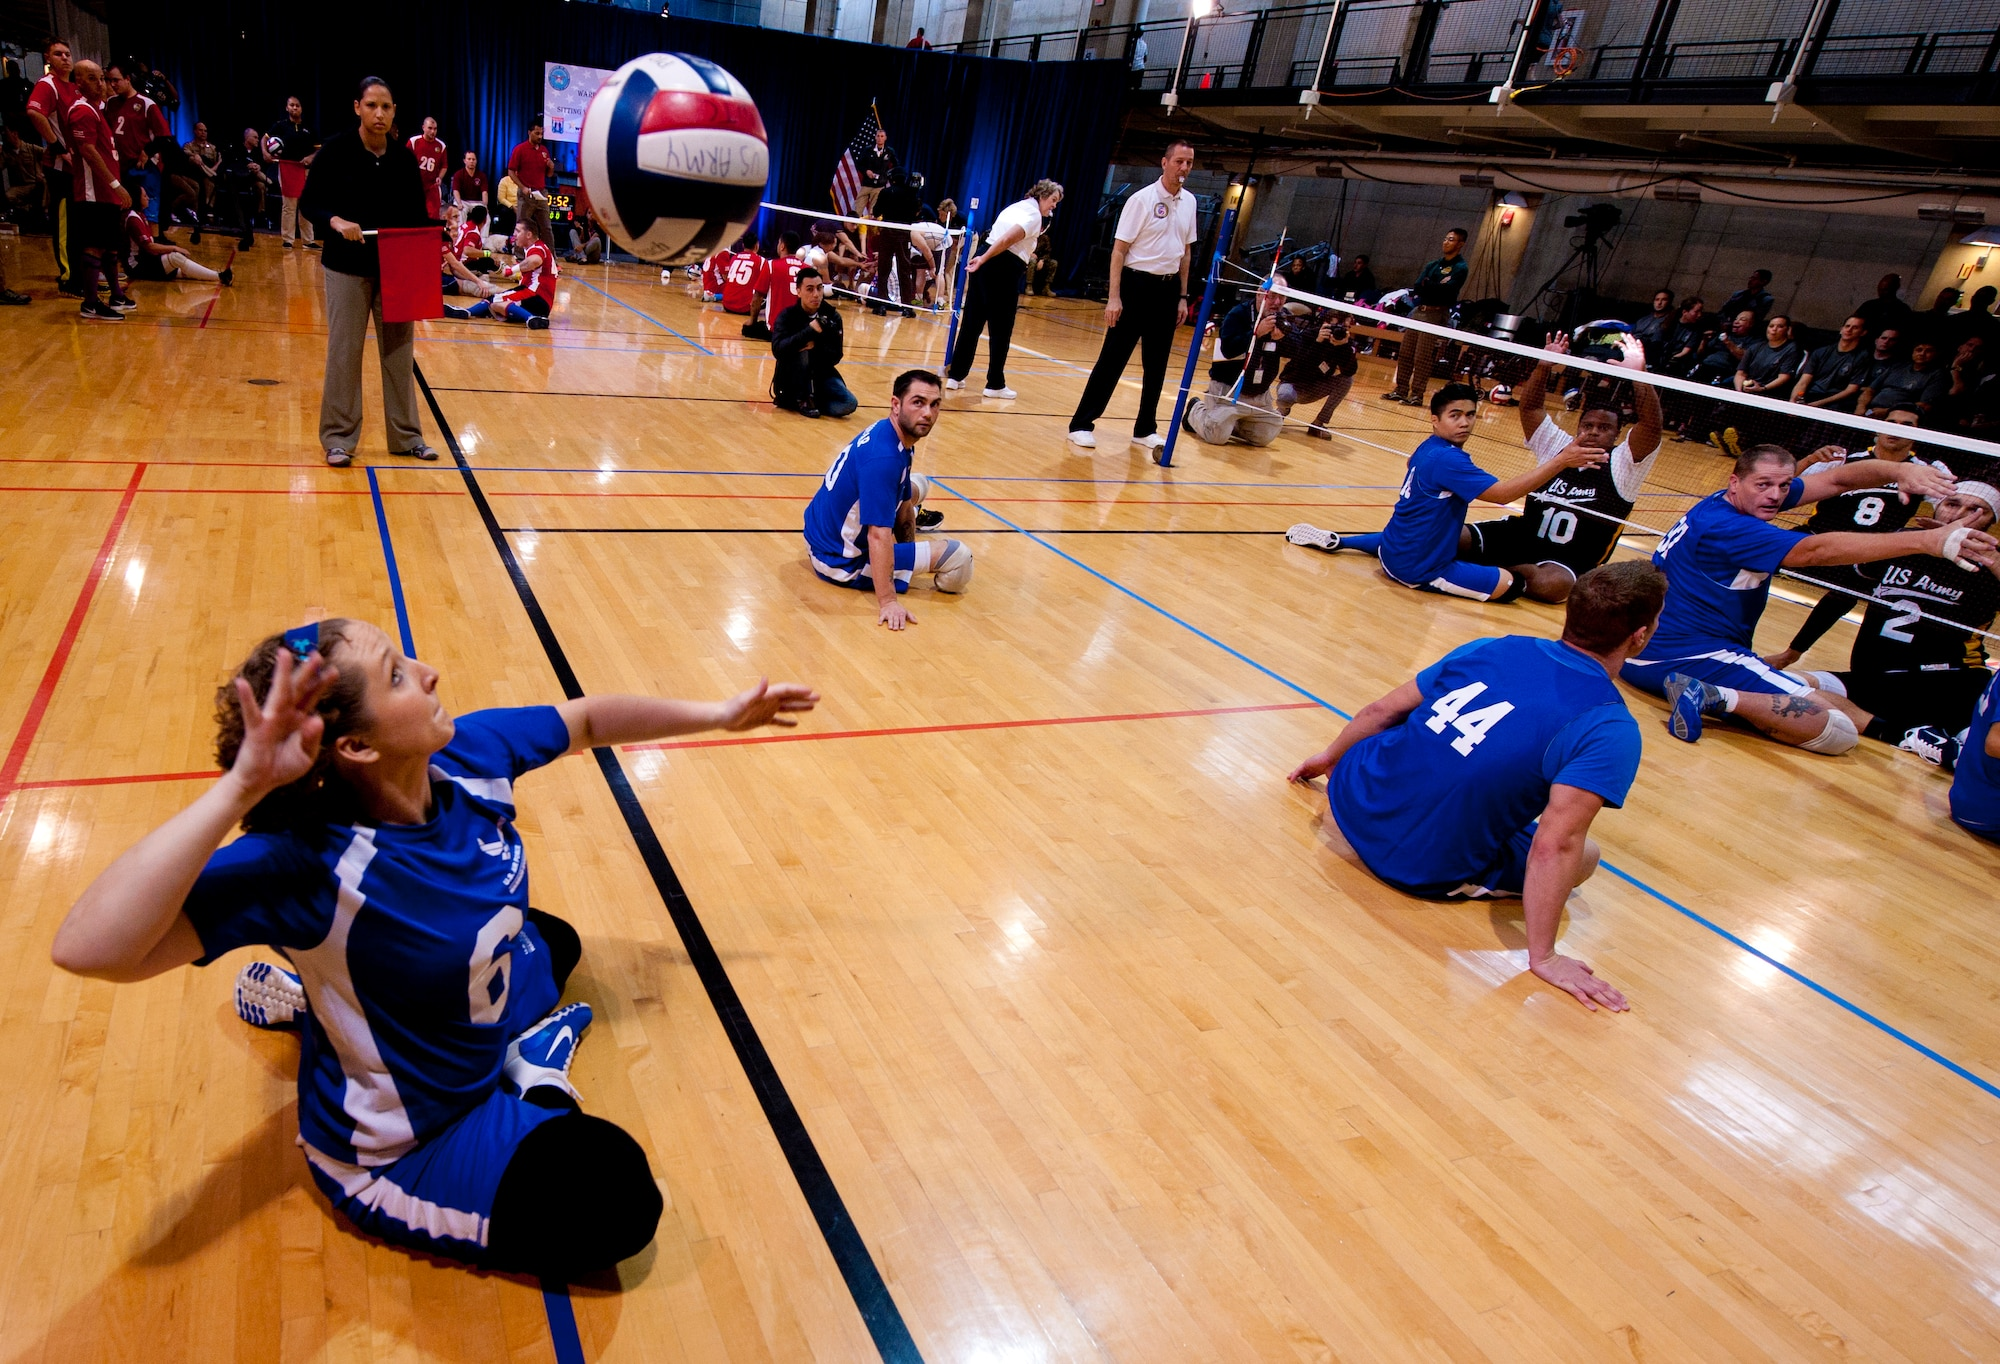 Staff Sgt. Melissa Moreau serves the volleyball during the 4th Annual Pentagon Sitting Volleyball Tournament Nov. 20, 2014, at the Pentagon Athletic Club.  In conjunction with Warrior Care Month, wounded warriors from each service's warrior transition units, as well as U.S. Special Operations Command, participated in the tournament. (U.S. Air Force photo/Staff Sgt. Anthony Nelson Jr.)